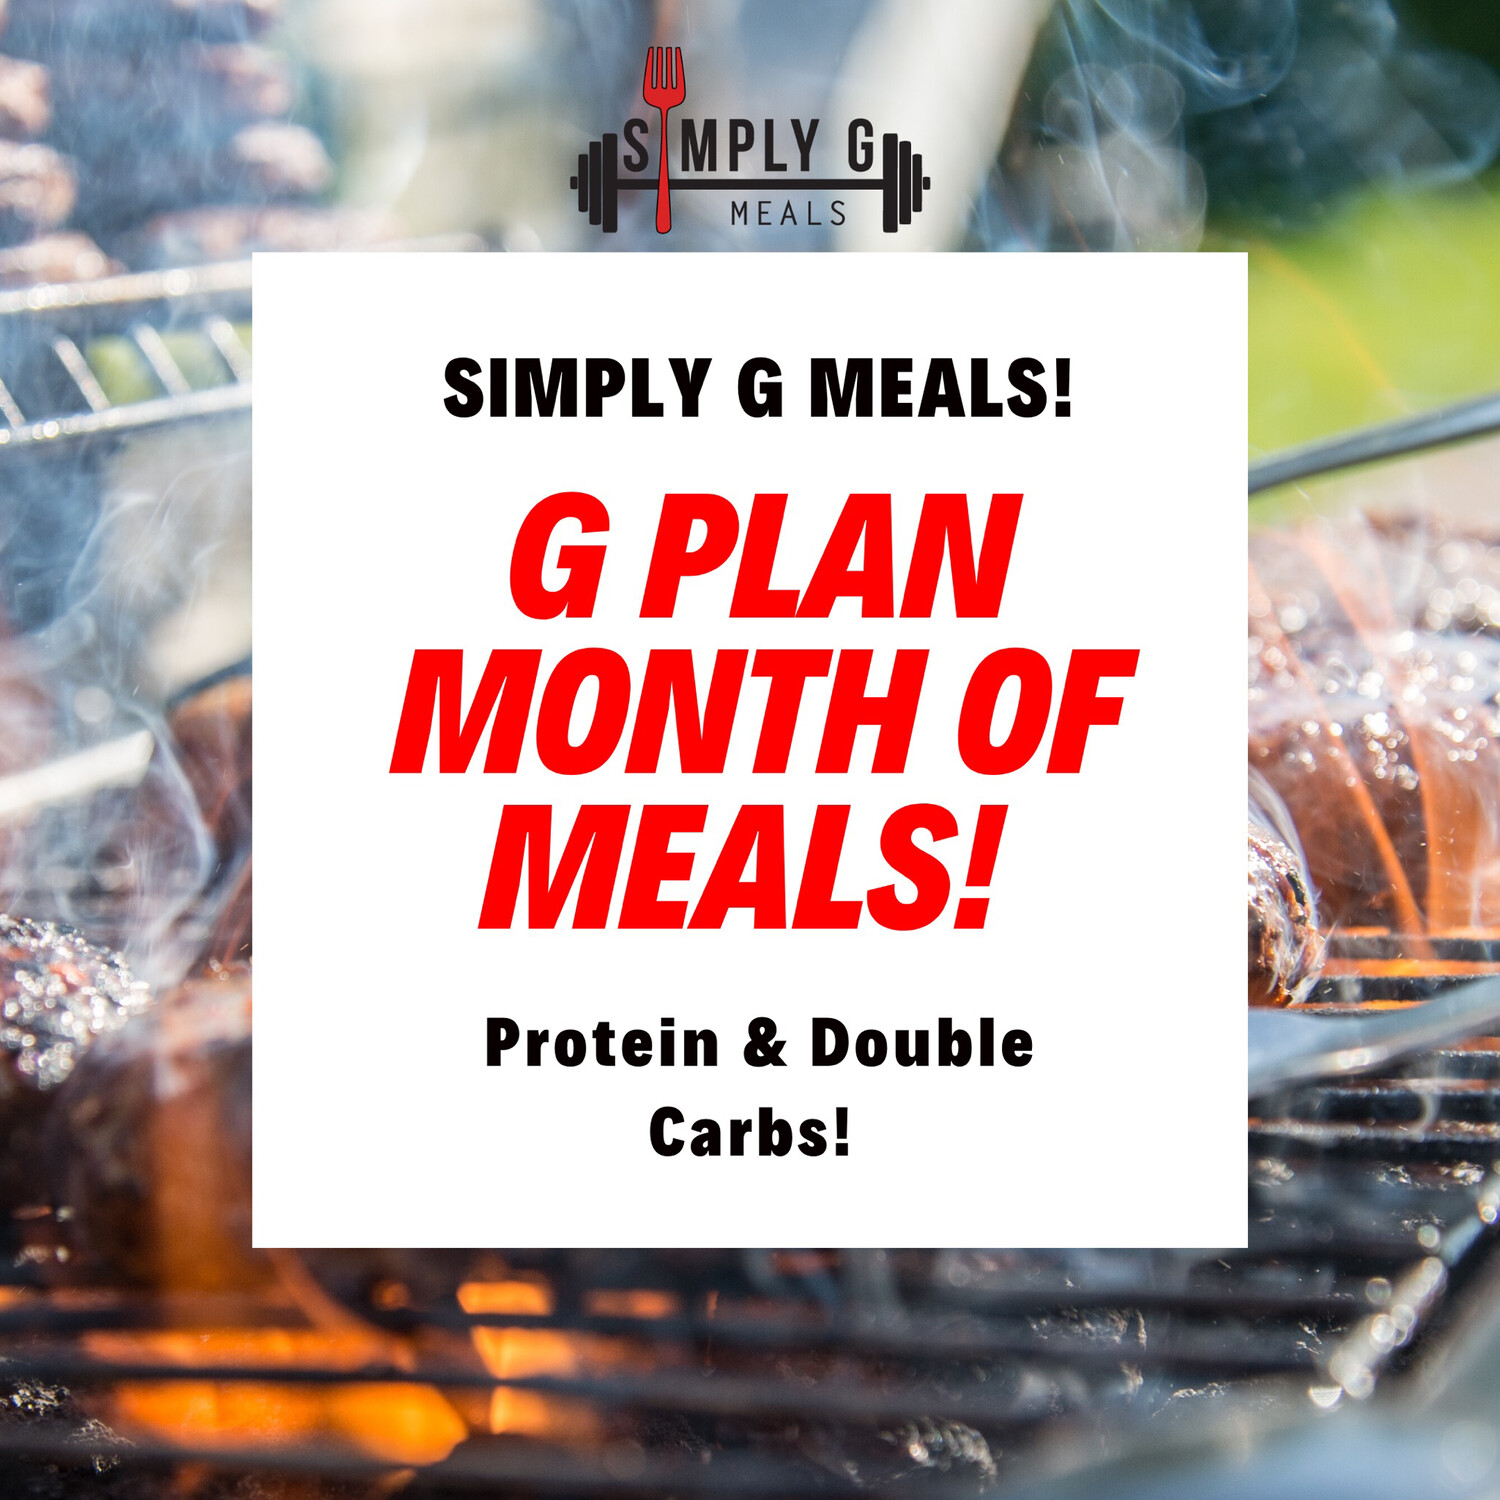 G PLAN MONTH OF MEALS (40 Meals) +5 DONATED MEALS